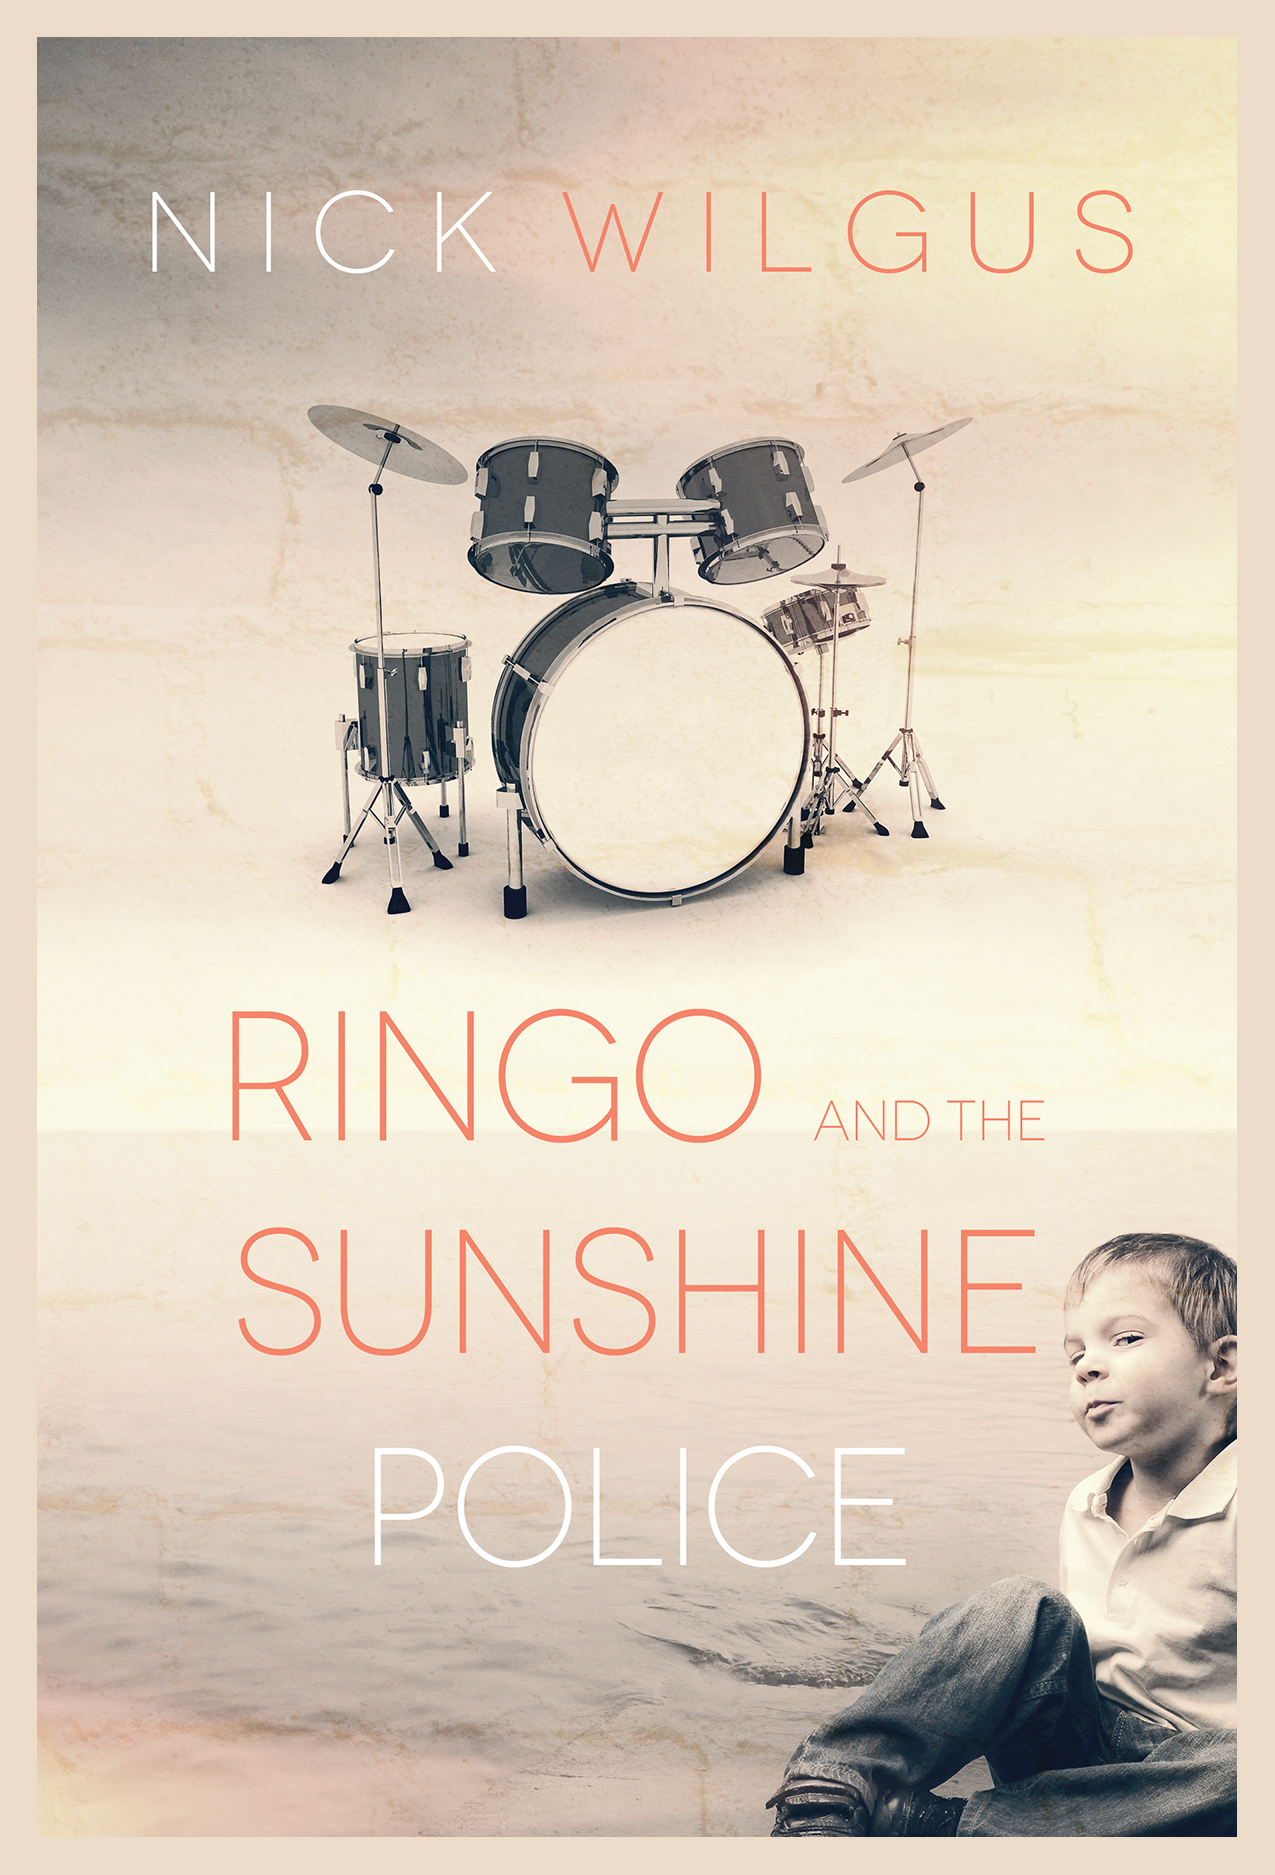 Ringo and the Sunshine Police by Nick Wilgus